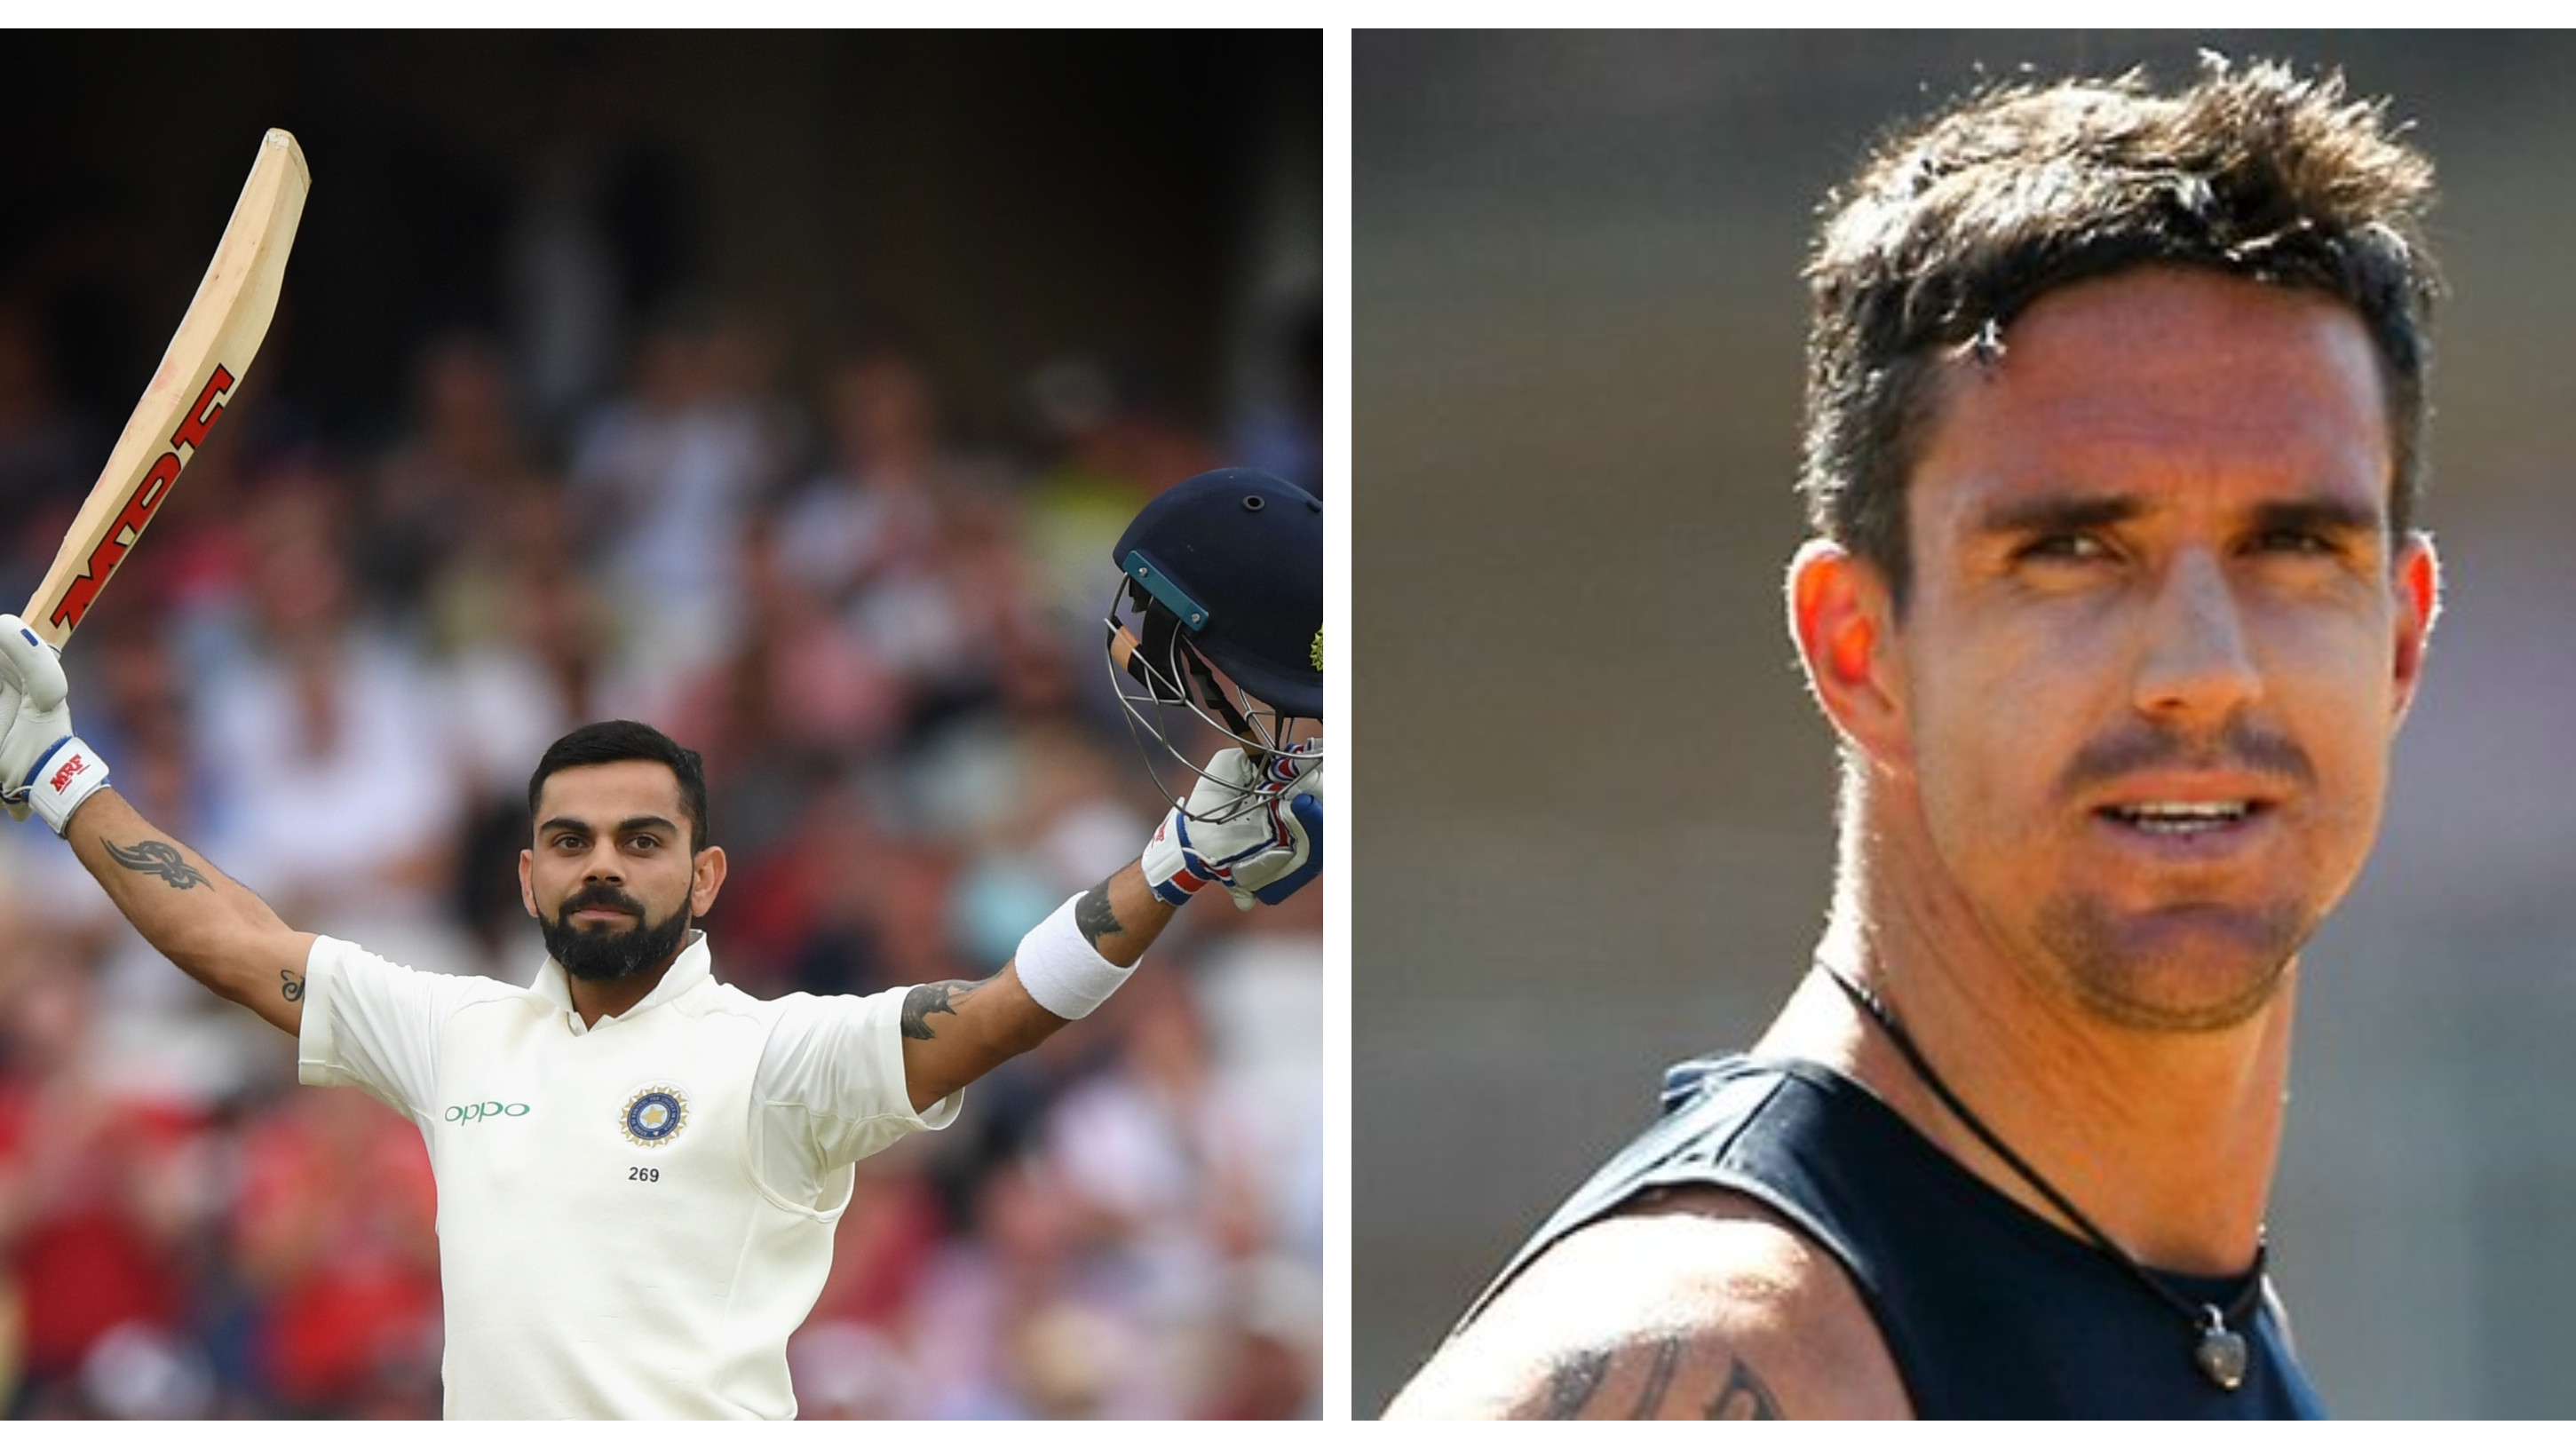 ENG vs IND 2018: Kevin Pietersen requests Virat Kohli to play a clinical knock at The Oval